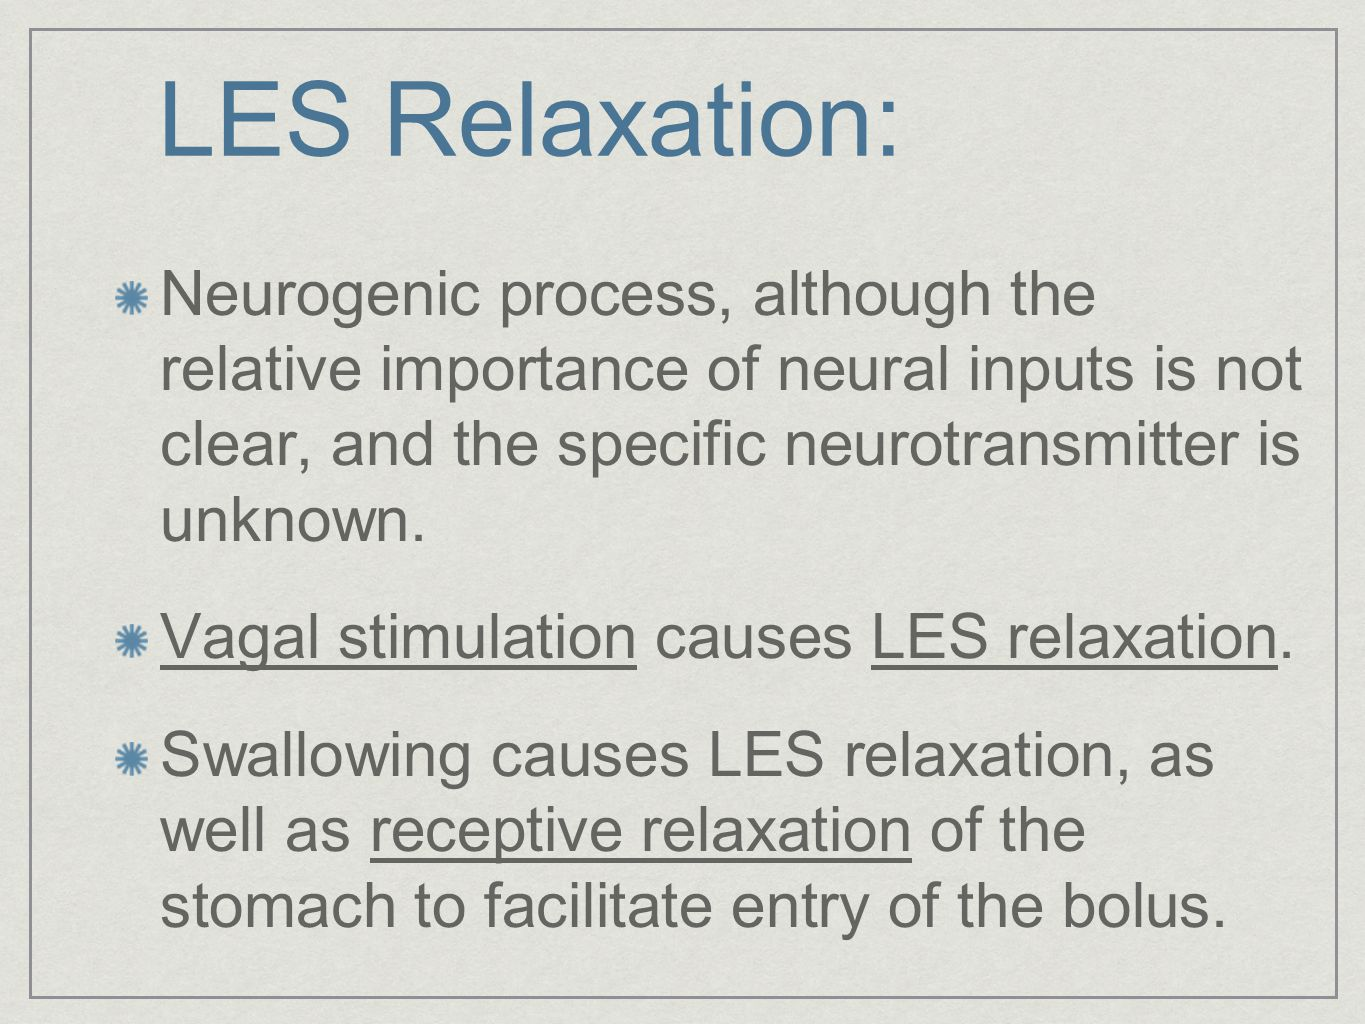 LES Relaxation: Neurogenic process, although the relative importance of neural inputs is not clear, and the specific neurotransmitter is unknown.